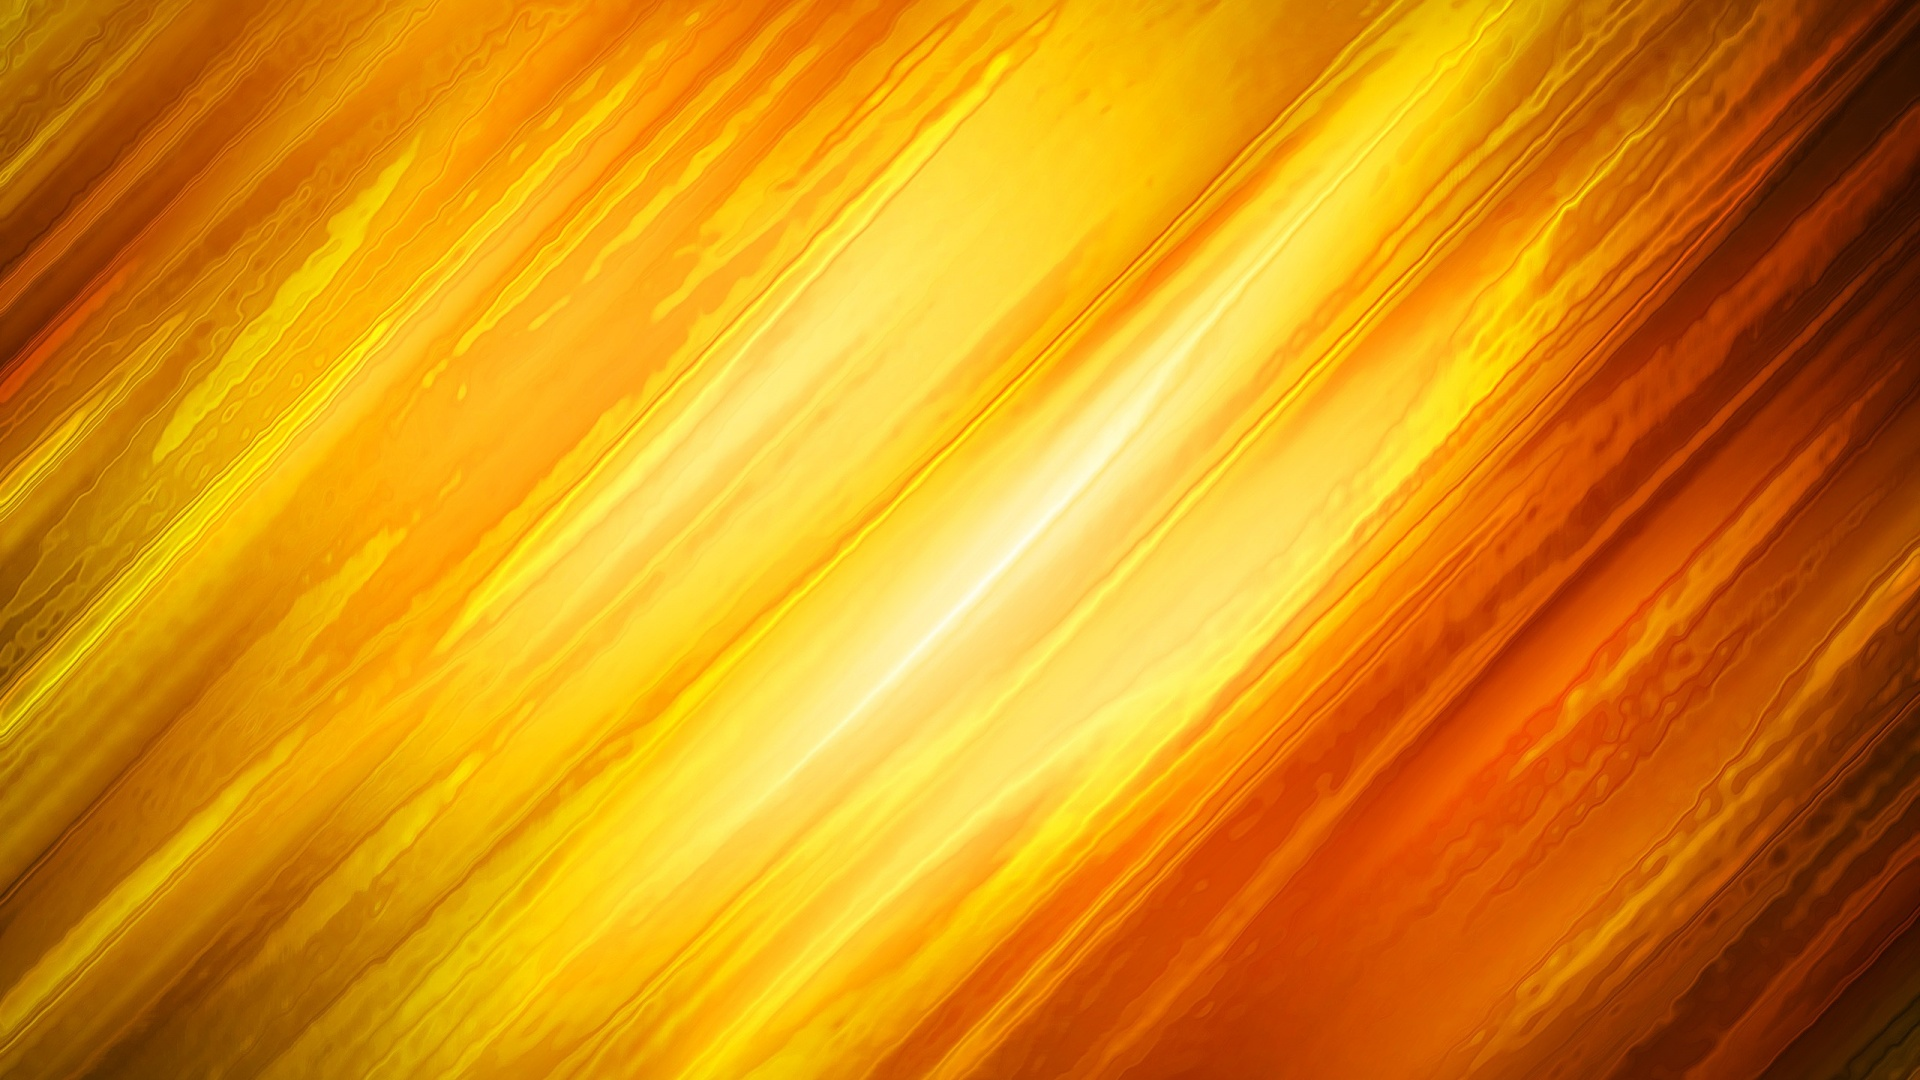 1920x1080 abstract yellow and orange background desktop pc